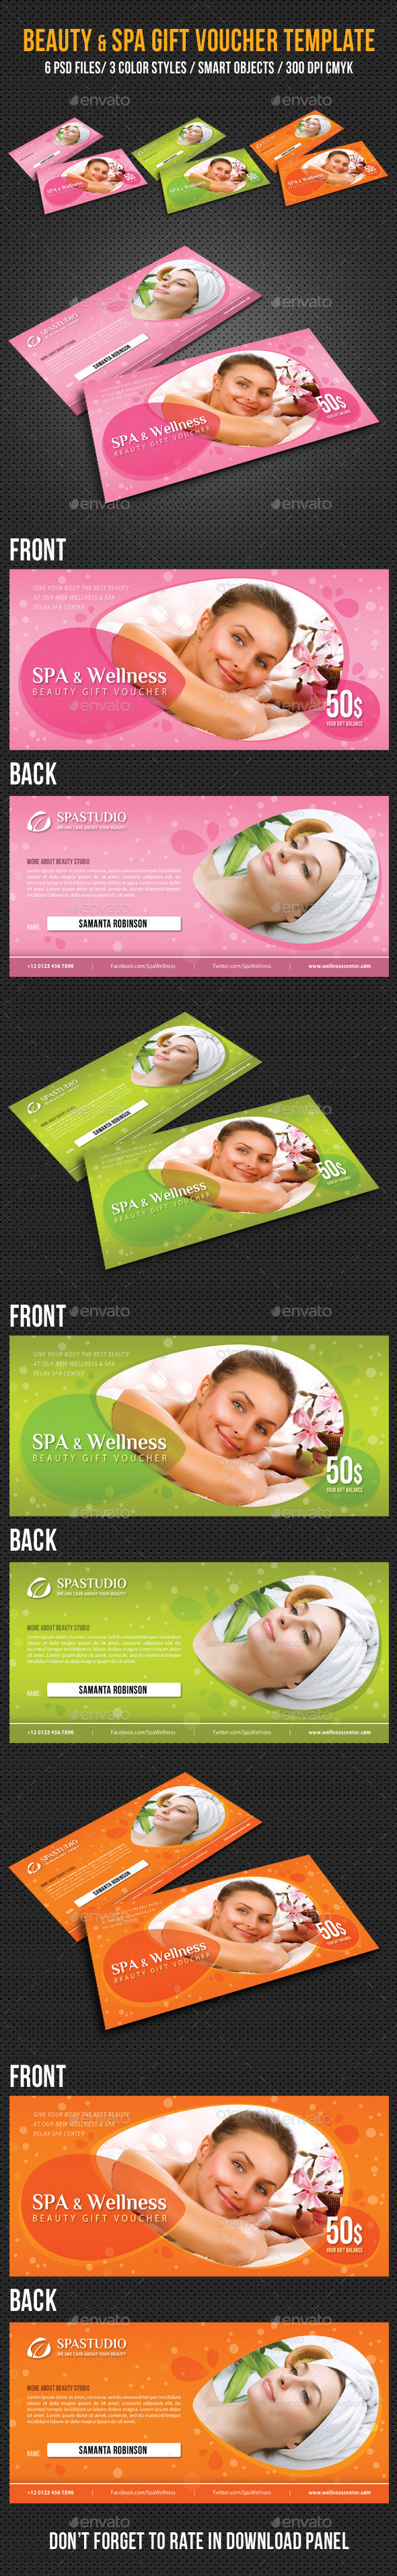 GraphicRiver Spa and Wellness Gift Voucher V01 9227976